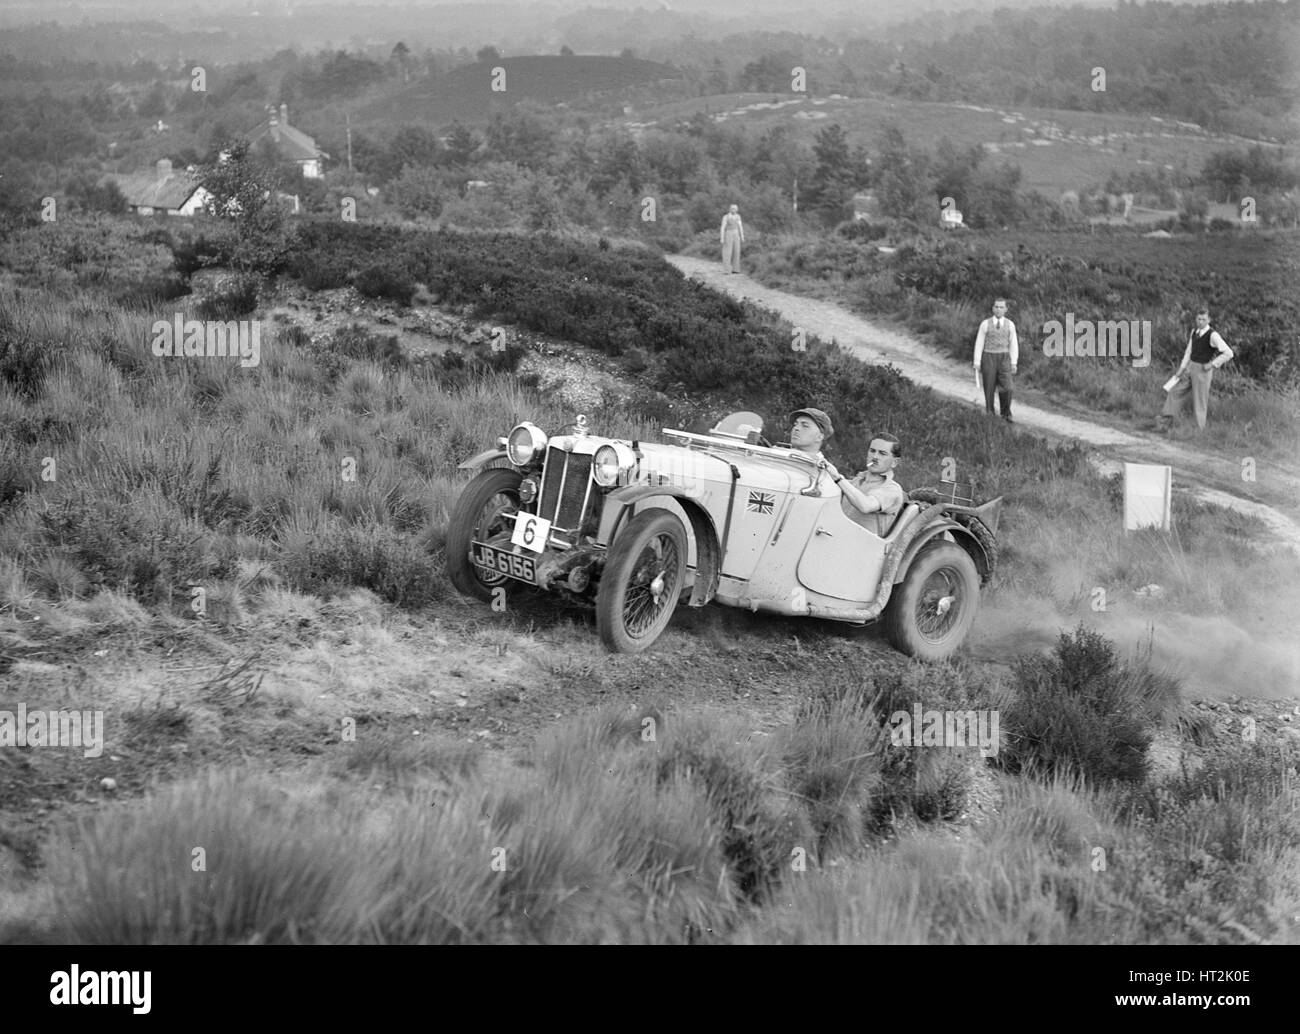 1935 MG PA of RM Andrews taking part in the NWLMC Lawrence Cup Trial, 1937. Artist: Bill Brunell. - Stock Image